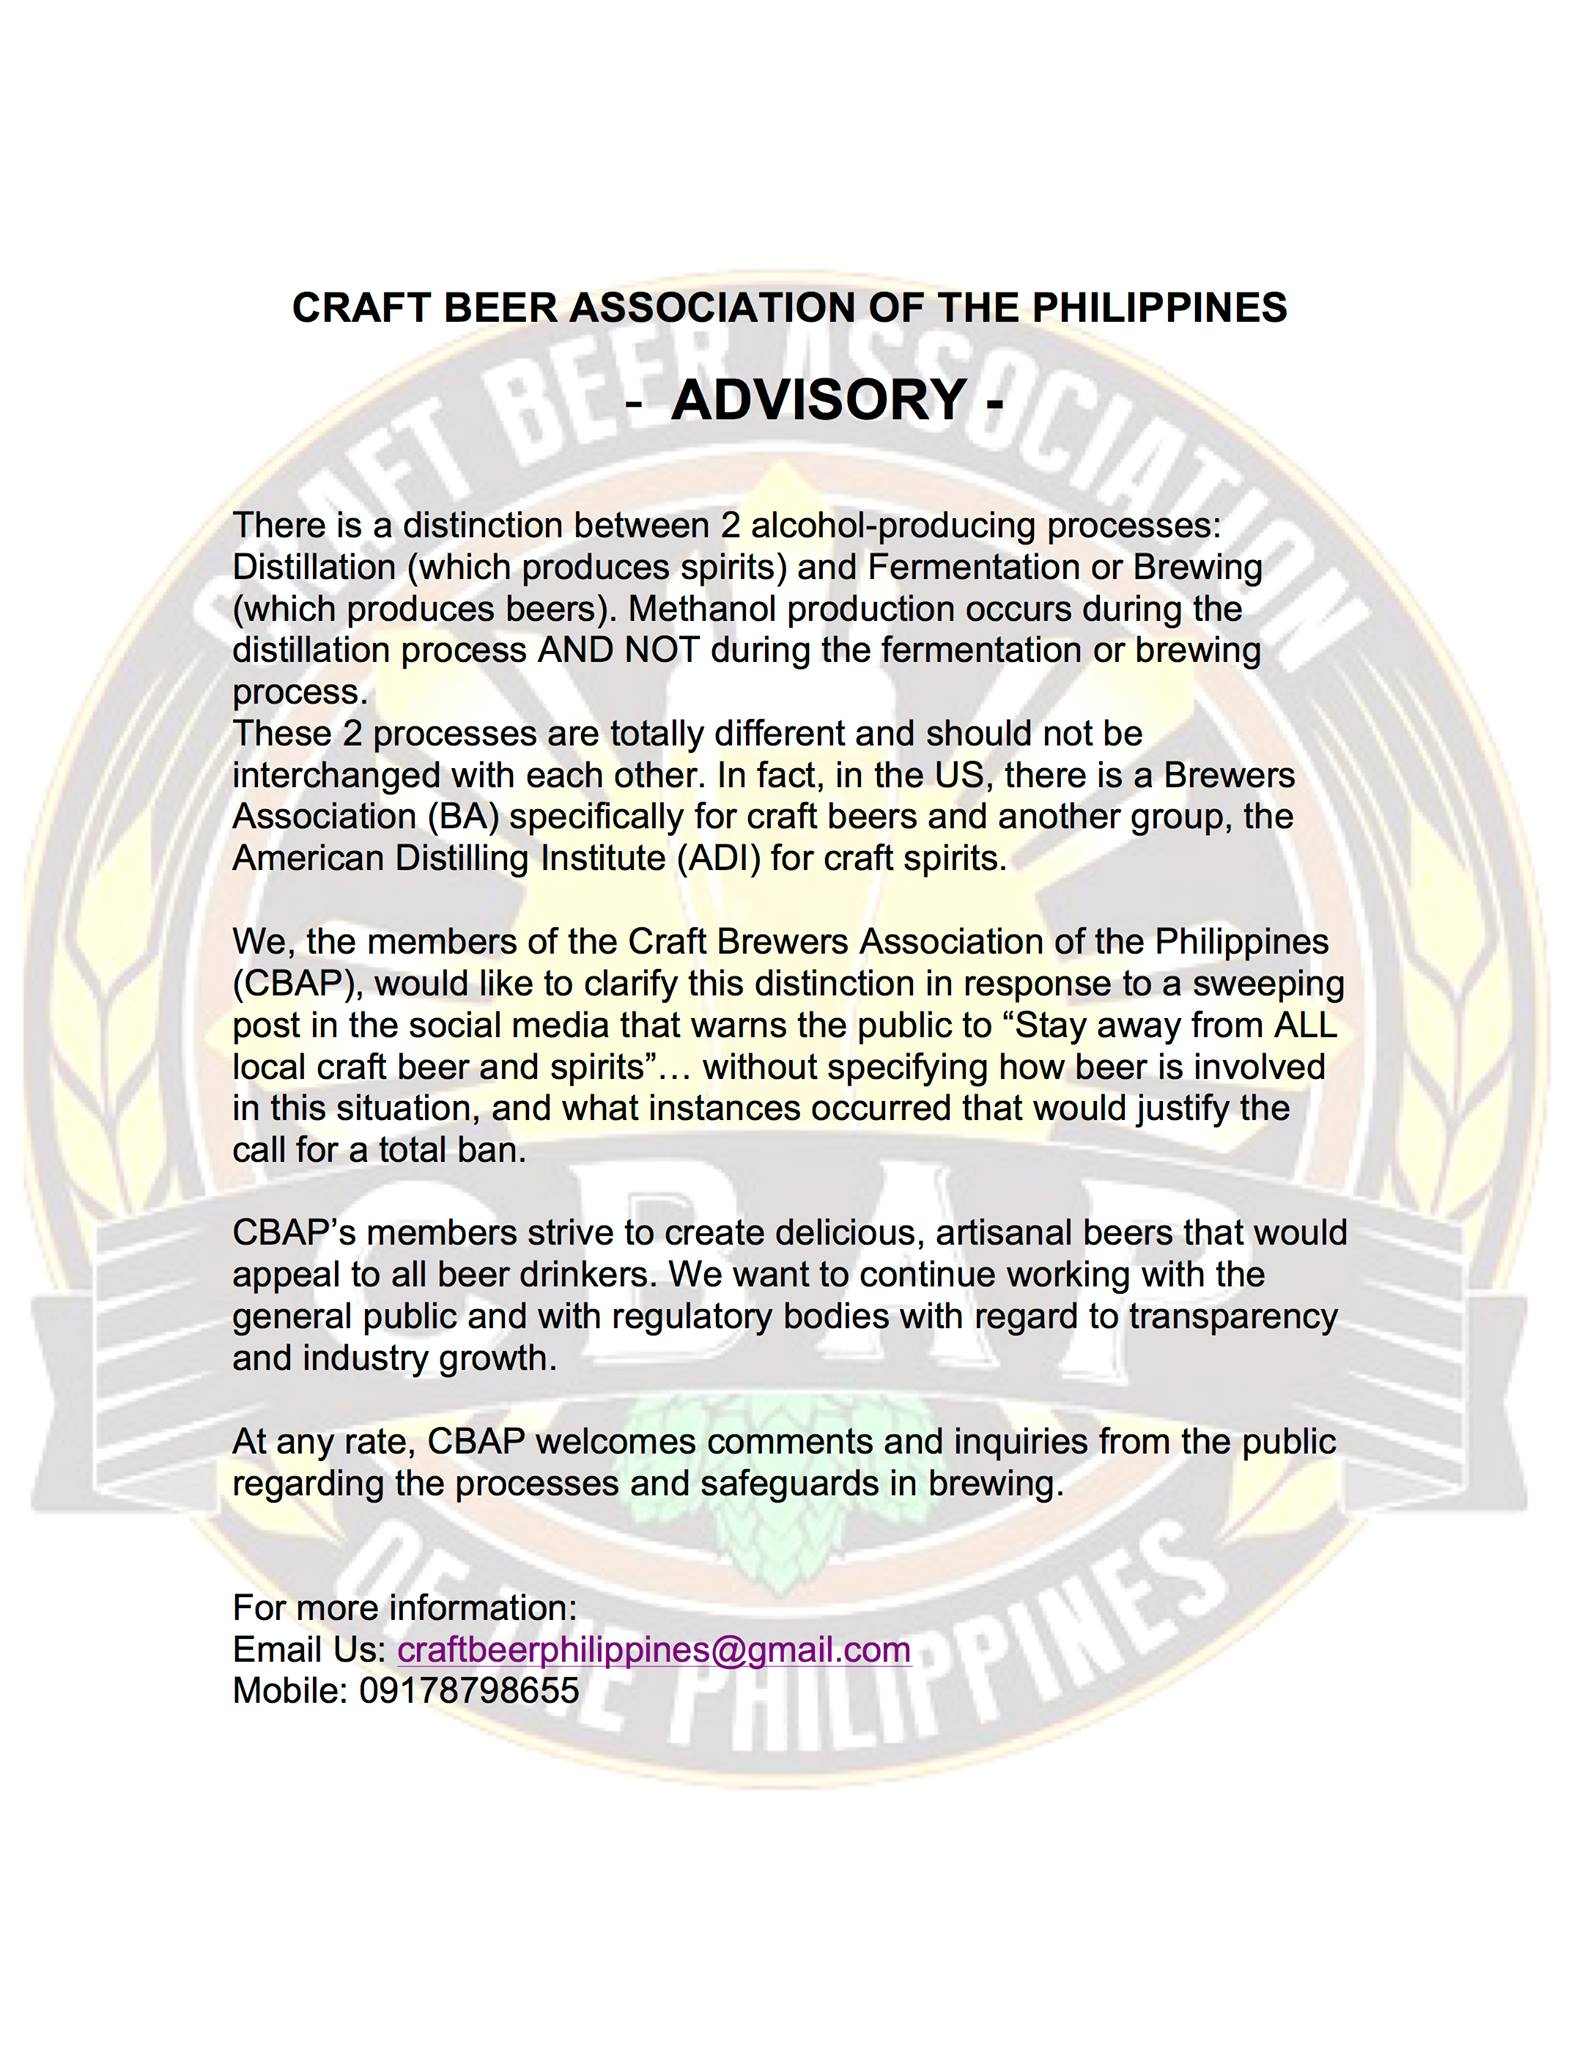 Craft Beer Association of the Philippines